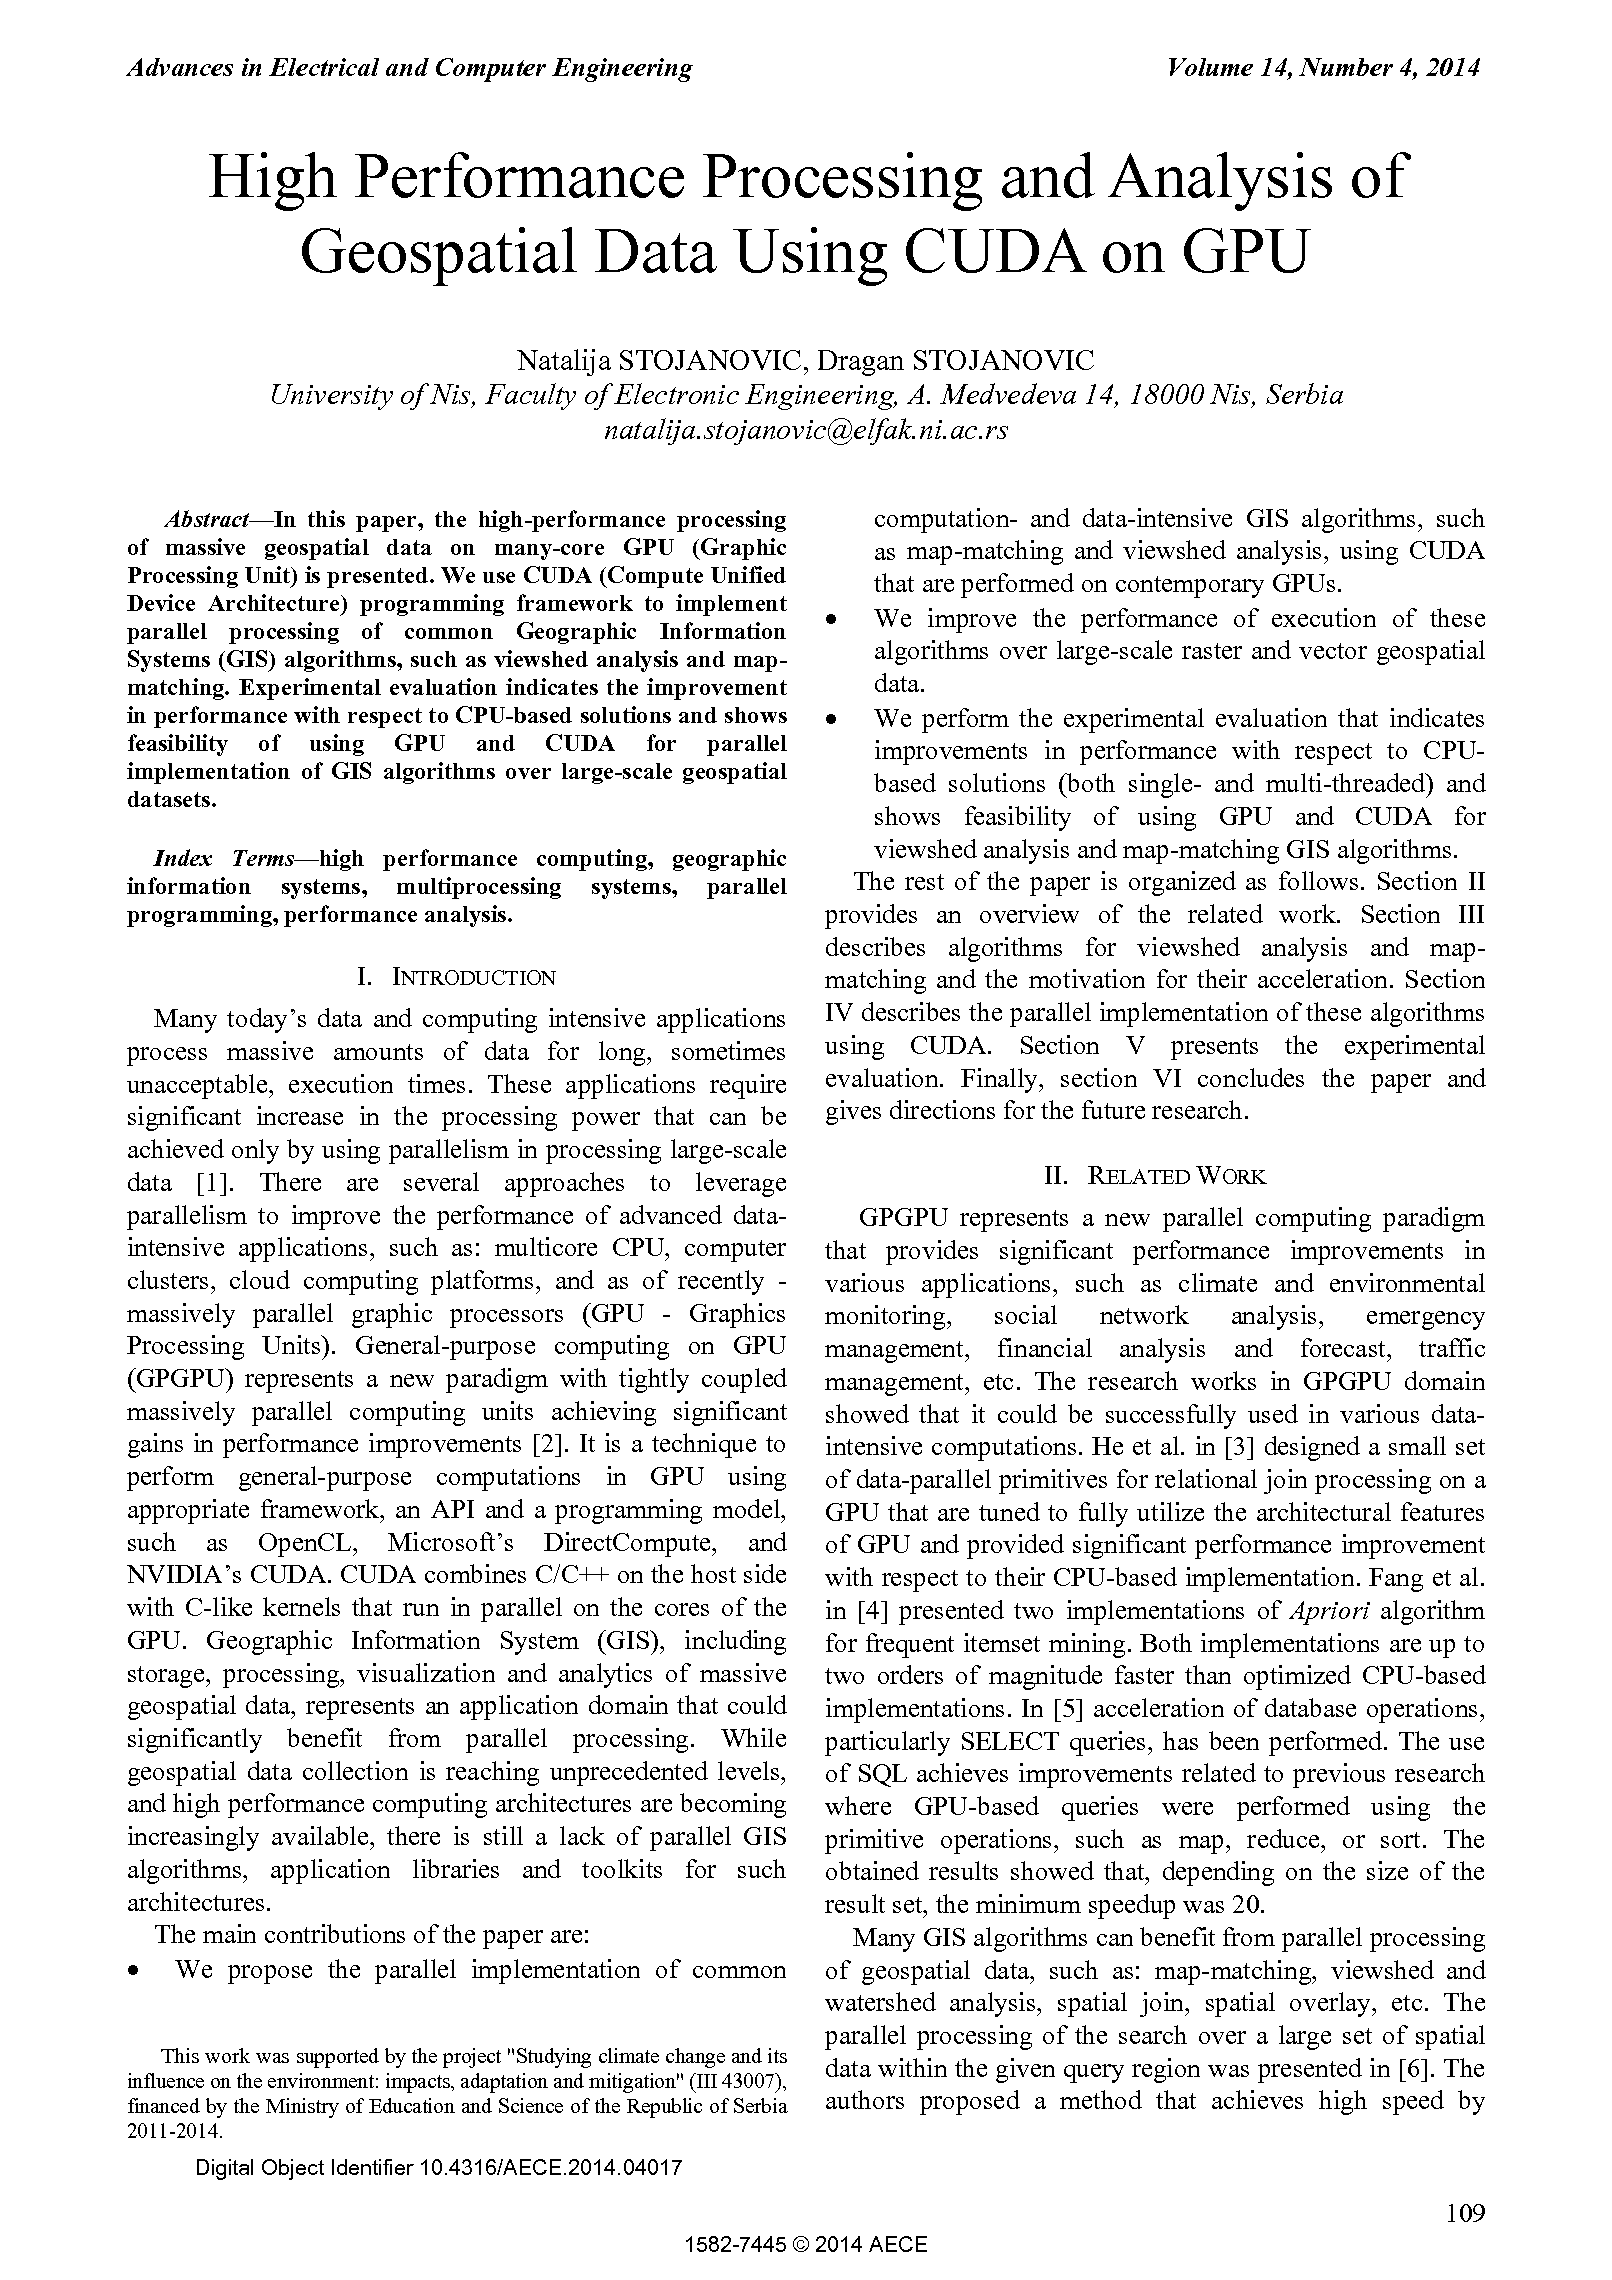 PDF Quickview for paper with DOI:10.4316/AECE.2014.04017